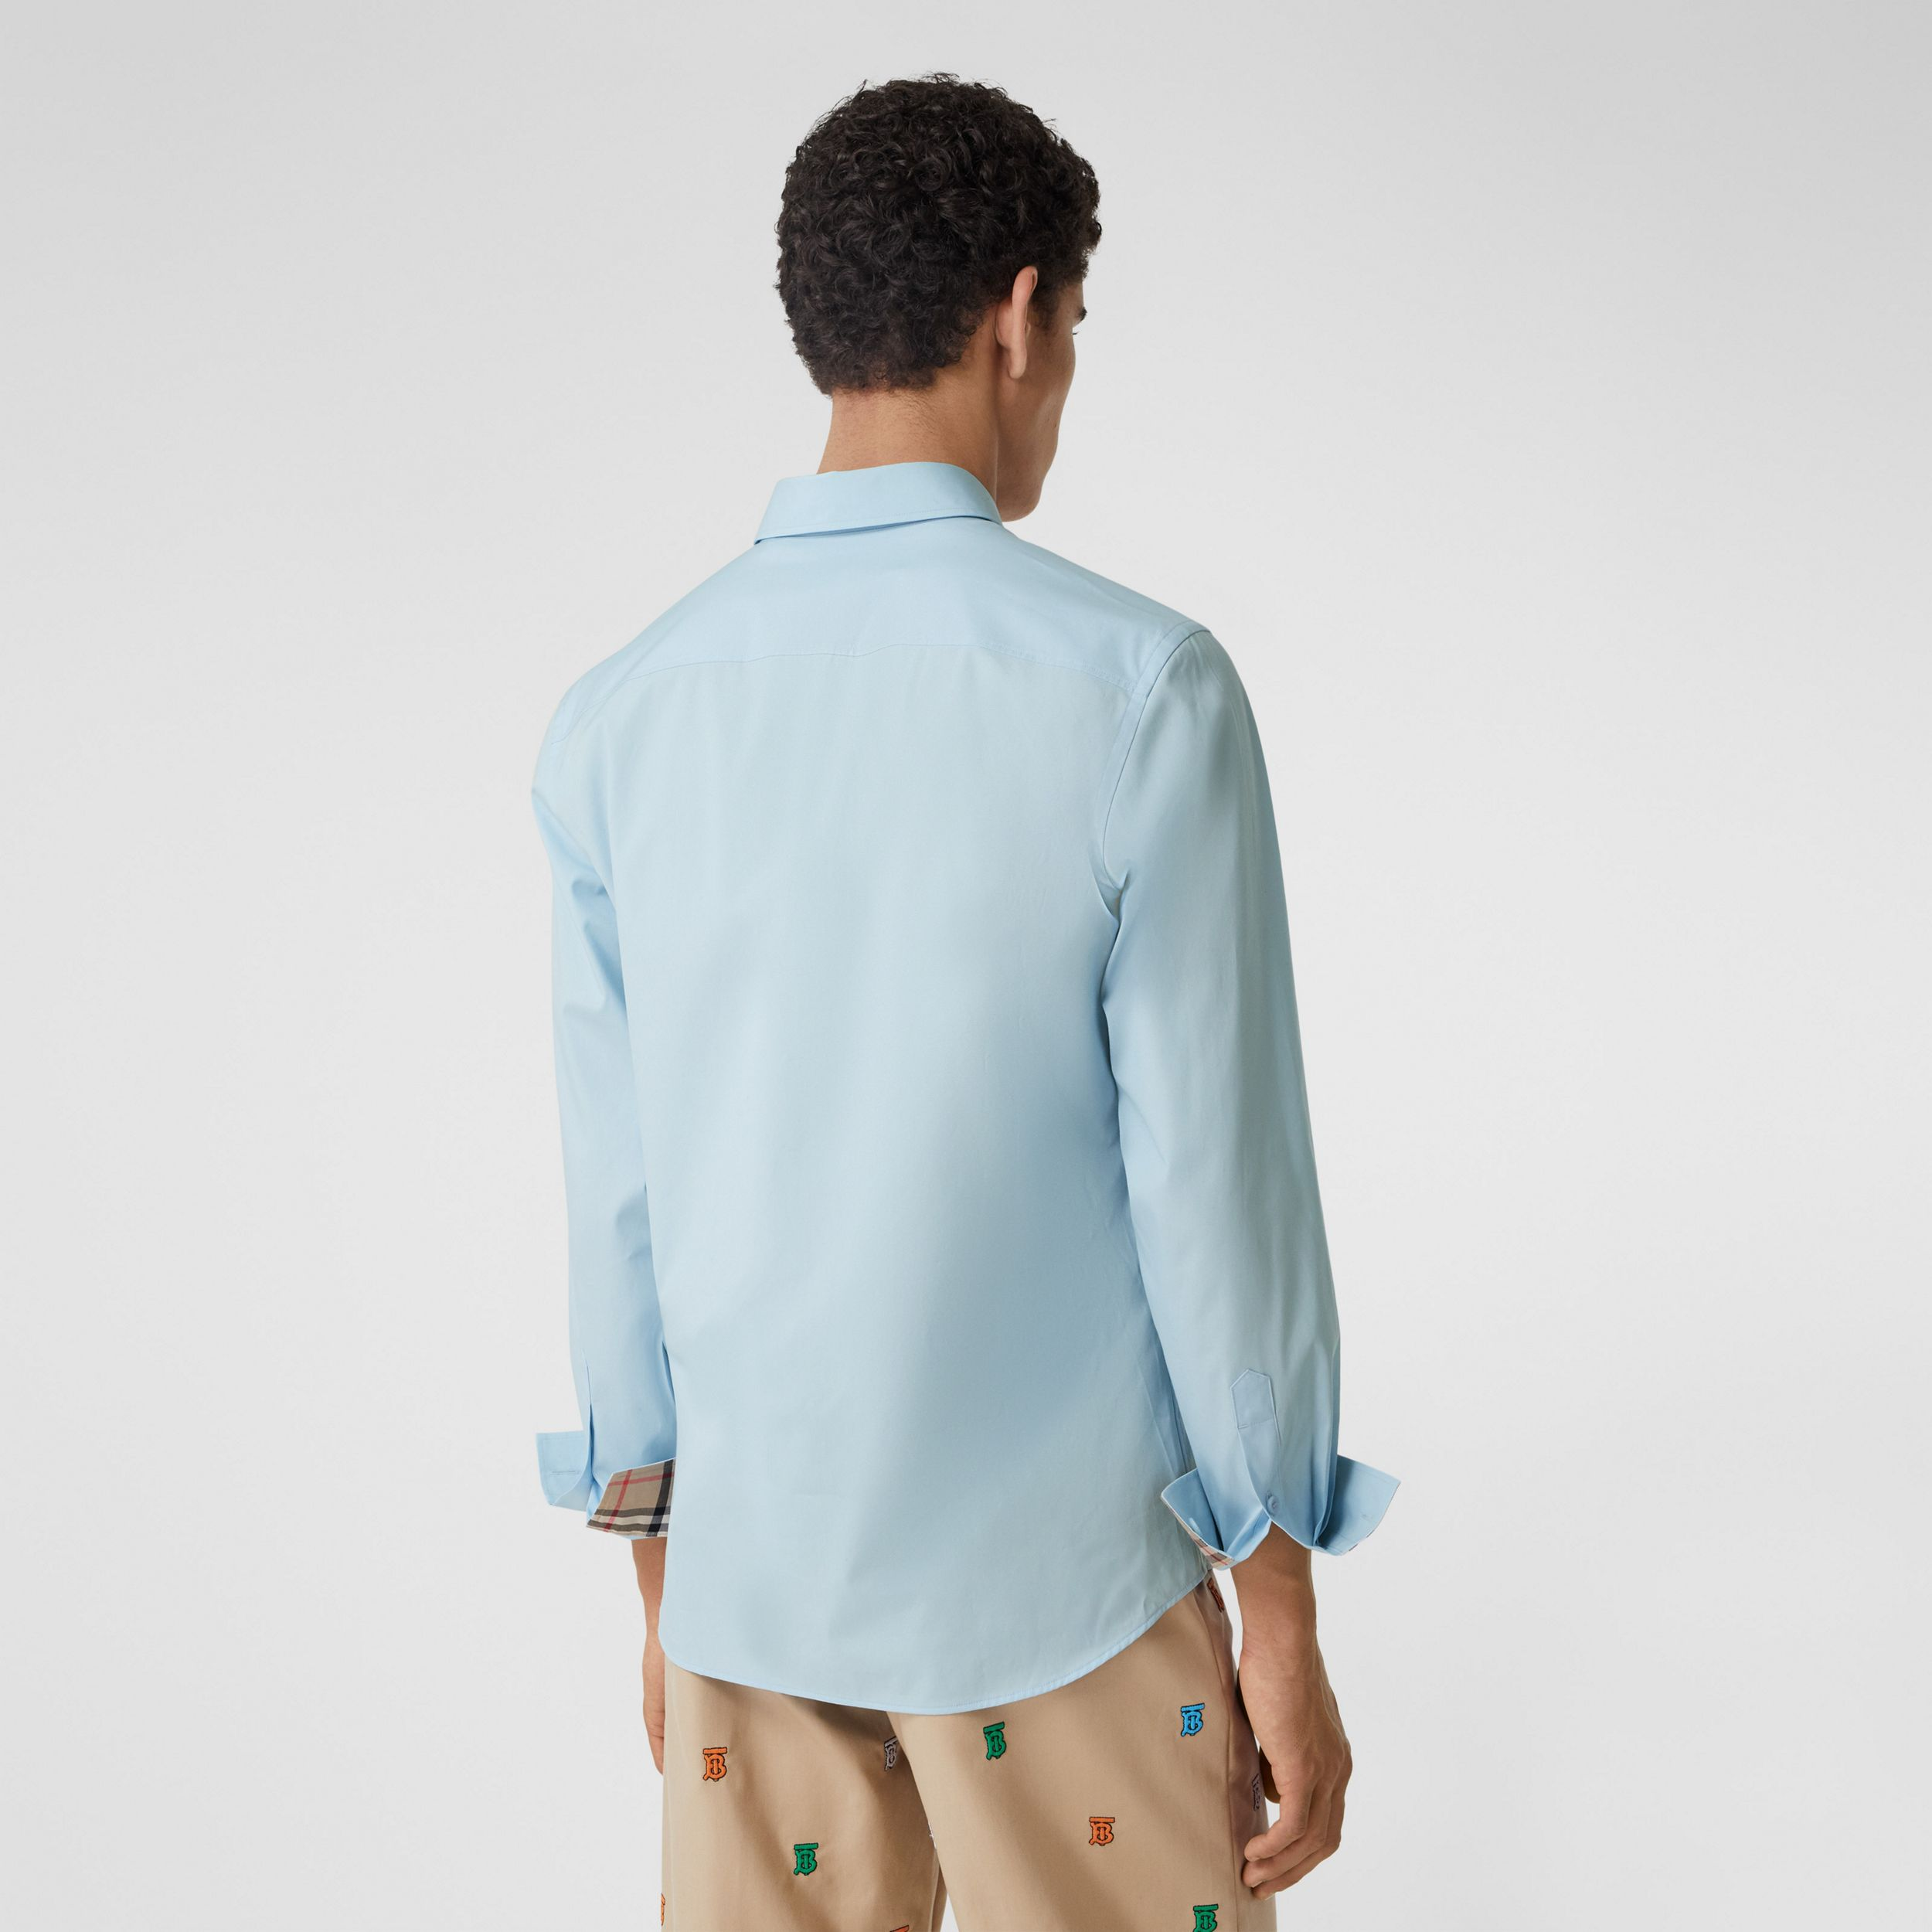 Slim Fit Monogram Motif Stretch Cotton Poplin Shirt in Pale Blue - Men | Burberry Hong Kong S.A.R. - 3